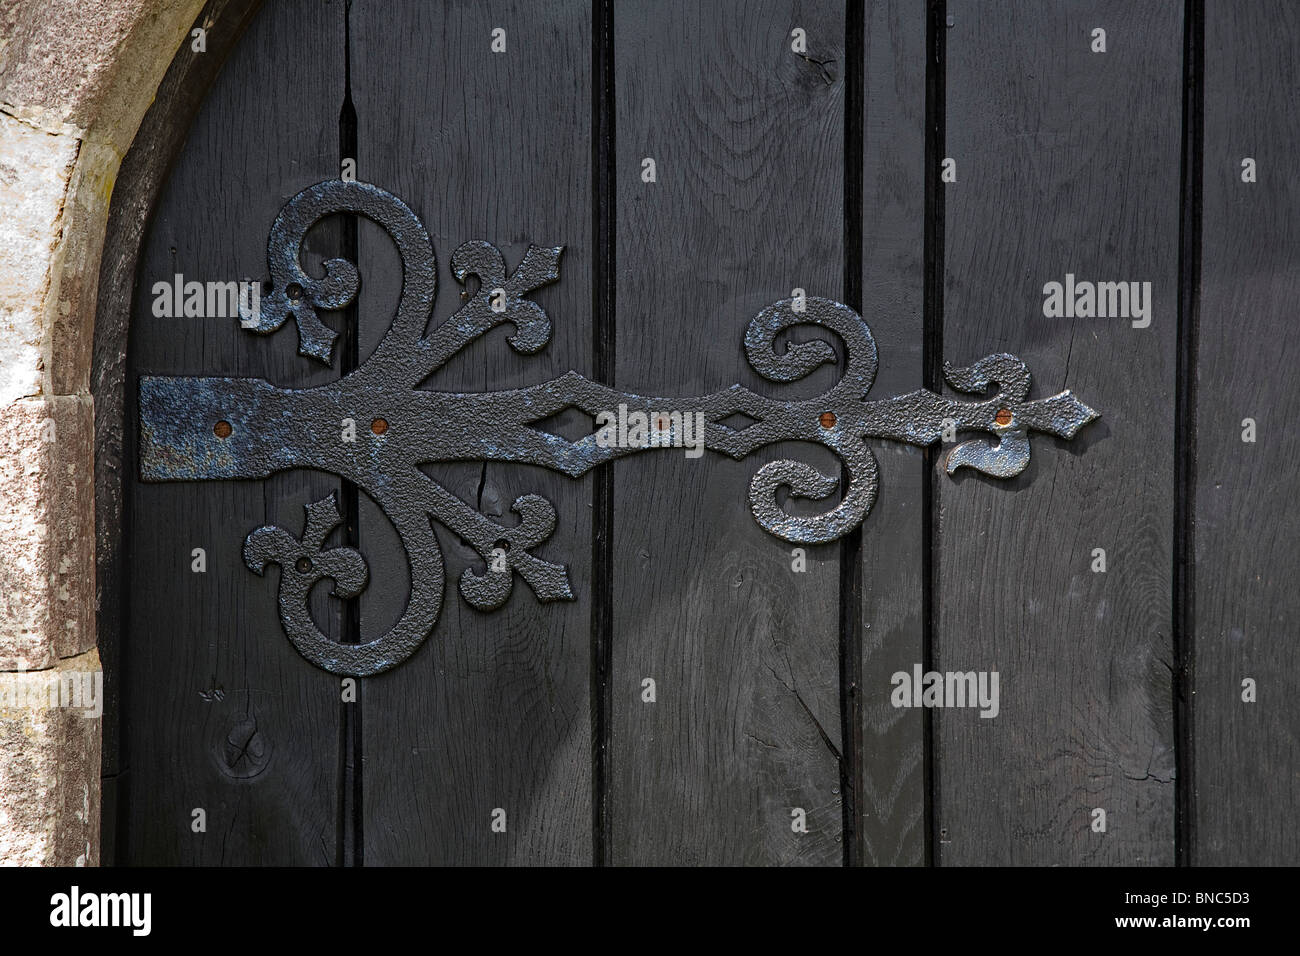 Old dark wooden door with elaborate iron hinge - Stock Image